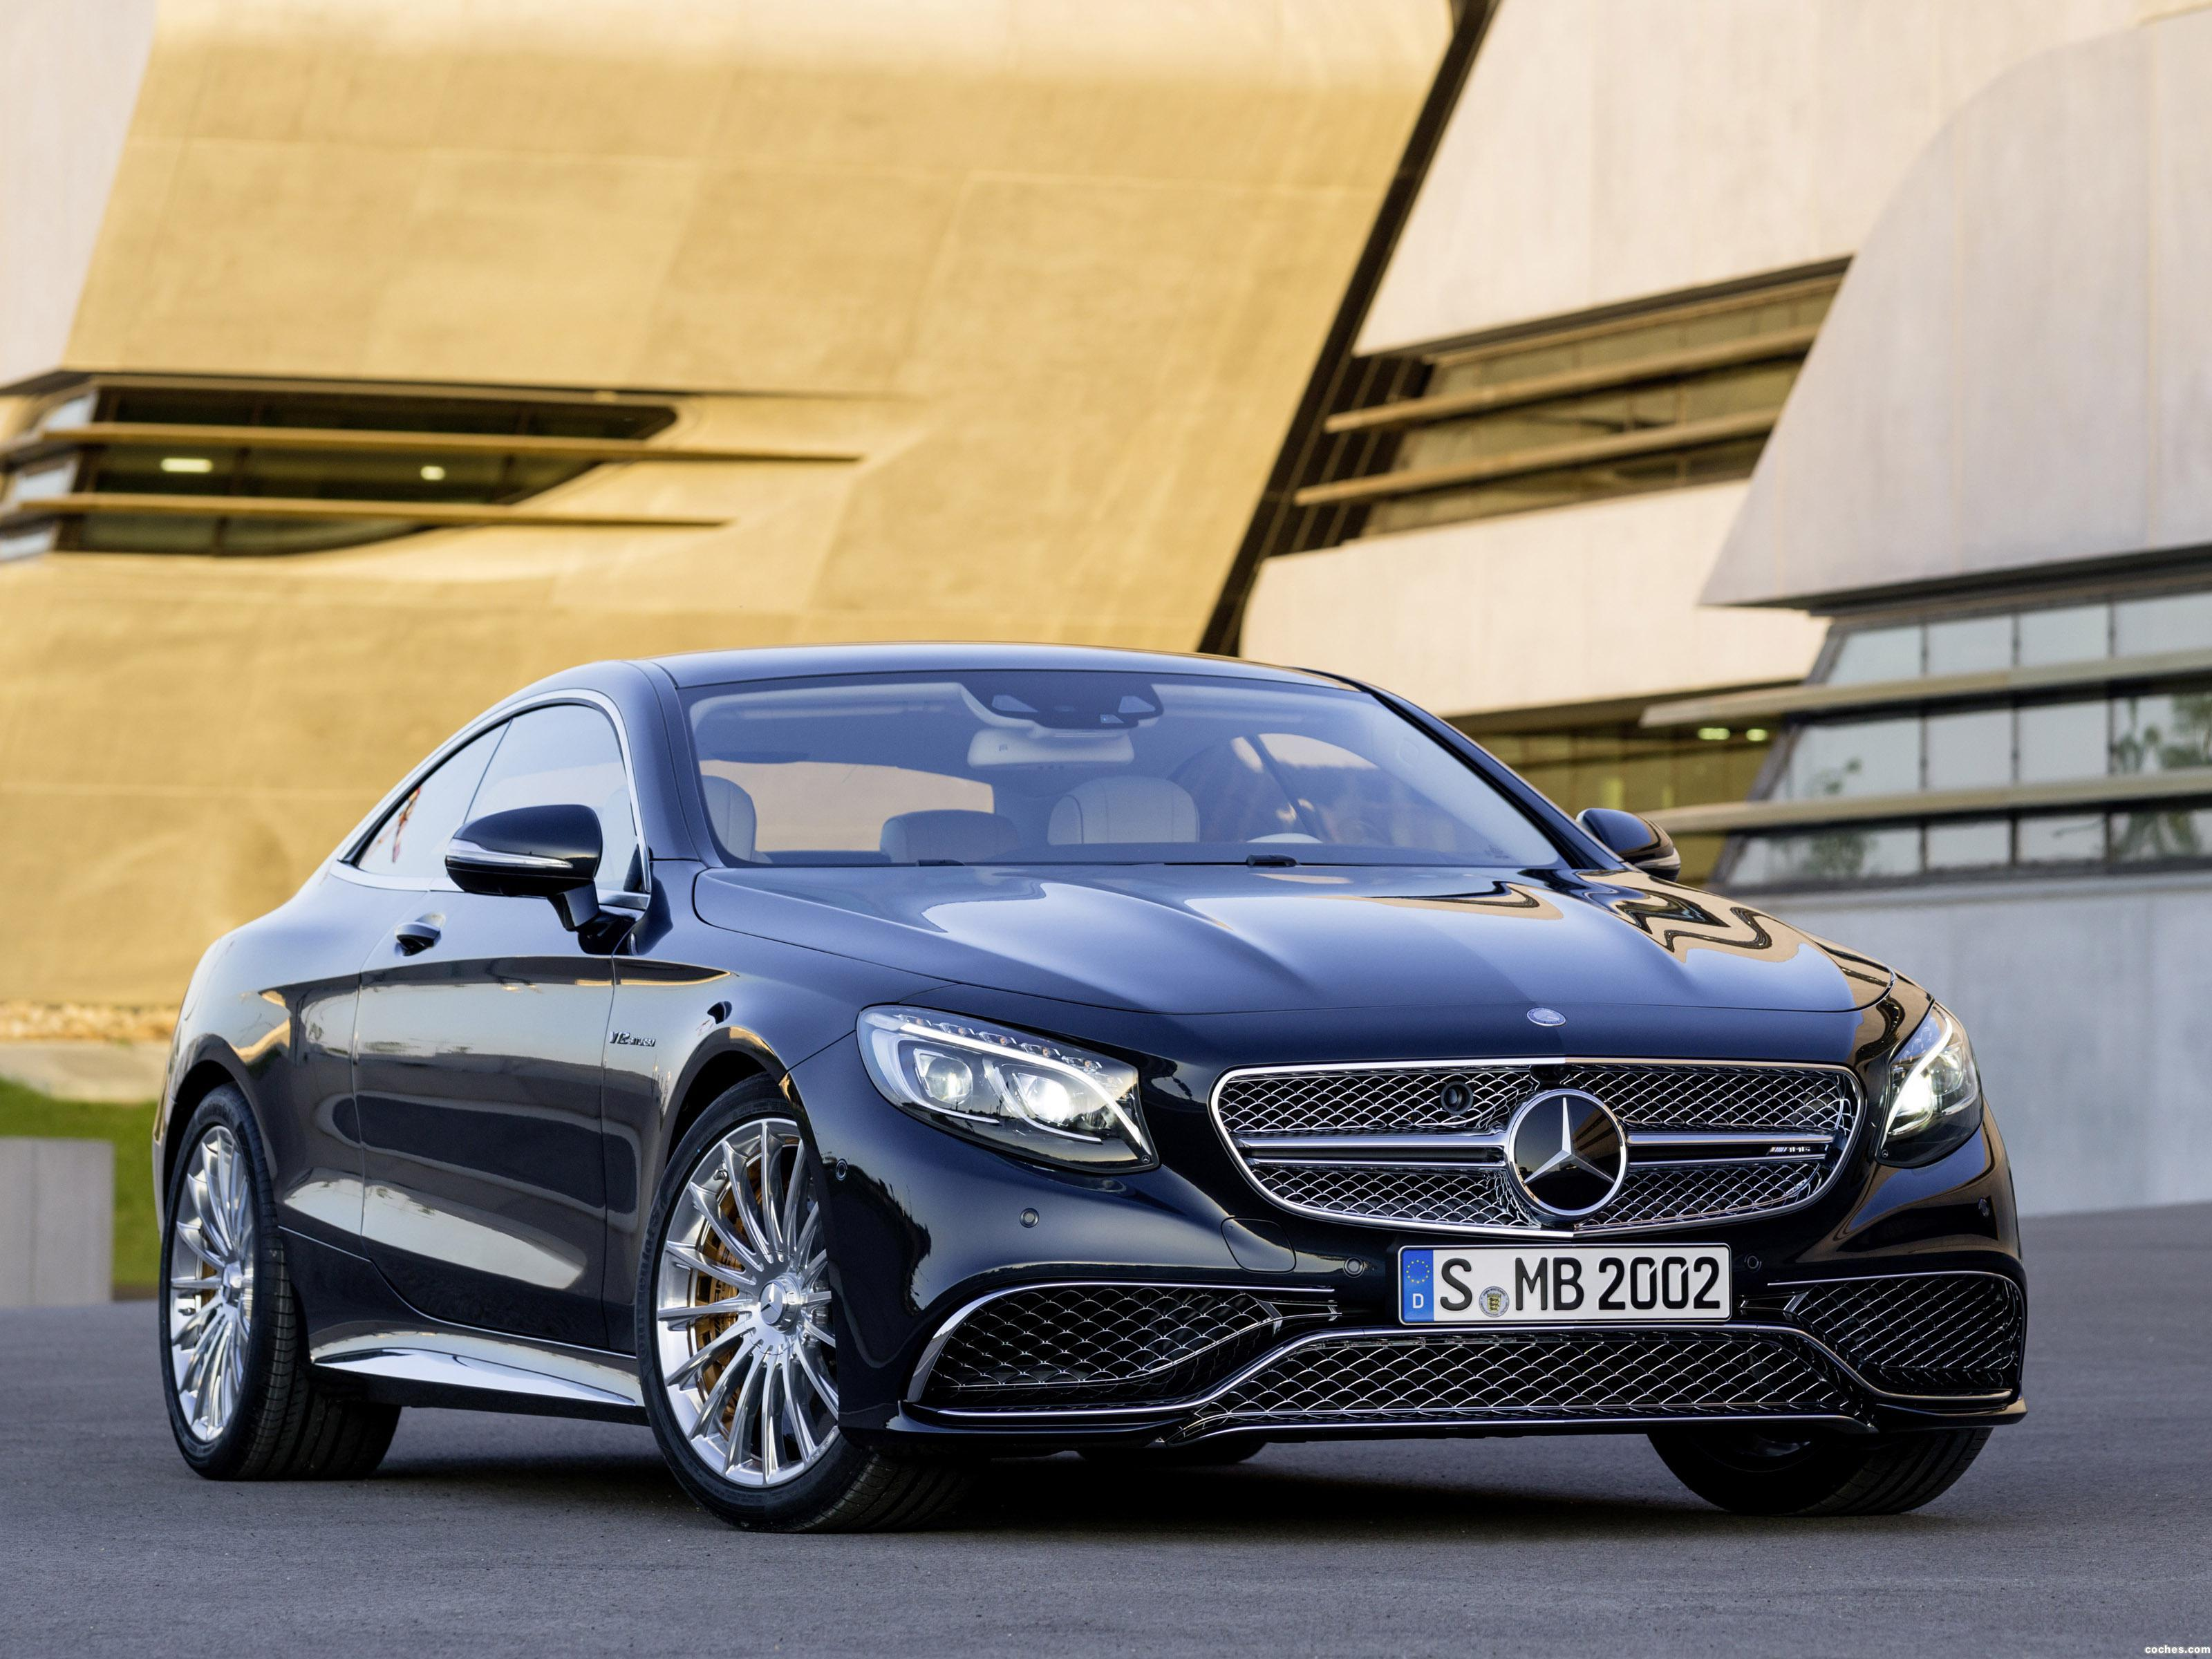 fotos de mercedes clase s s65 amg coupe c217 2014 foto 1. Black Bedroom Furniture Sets. Home Design Ideas